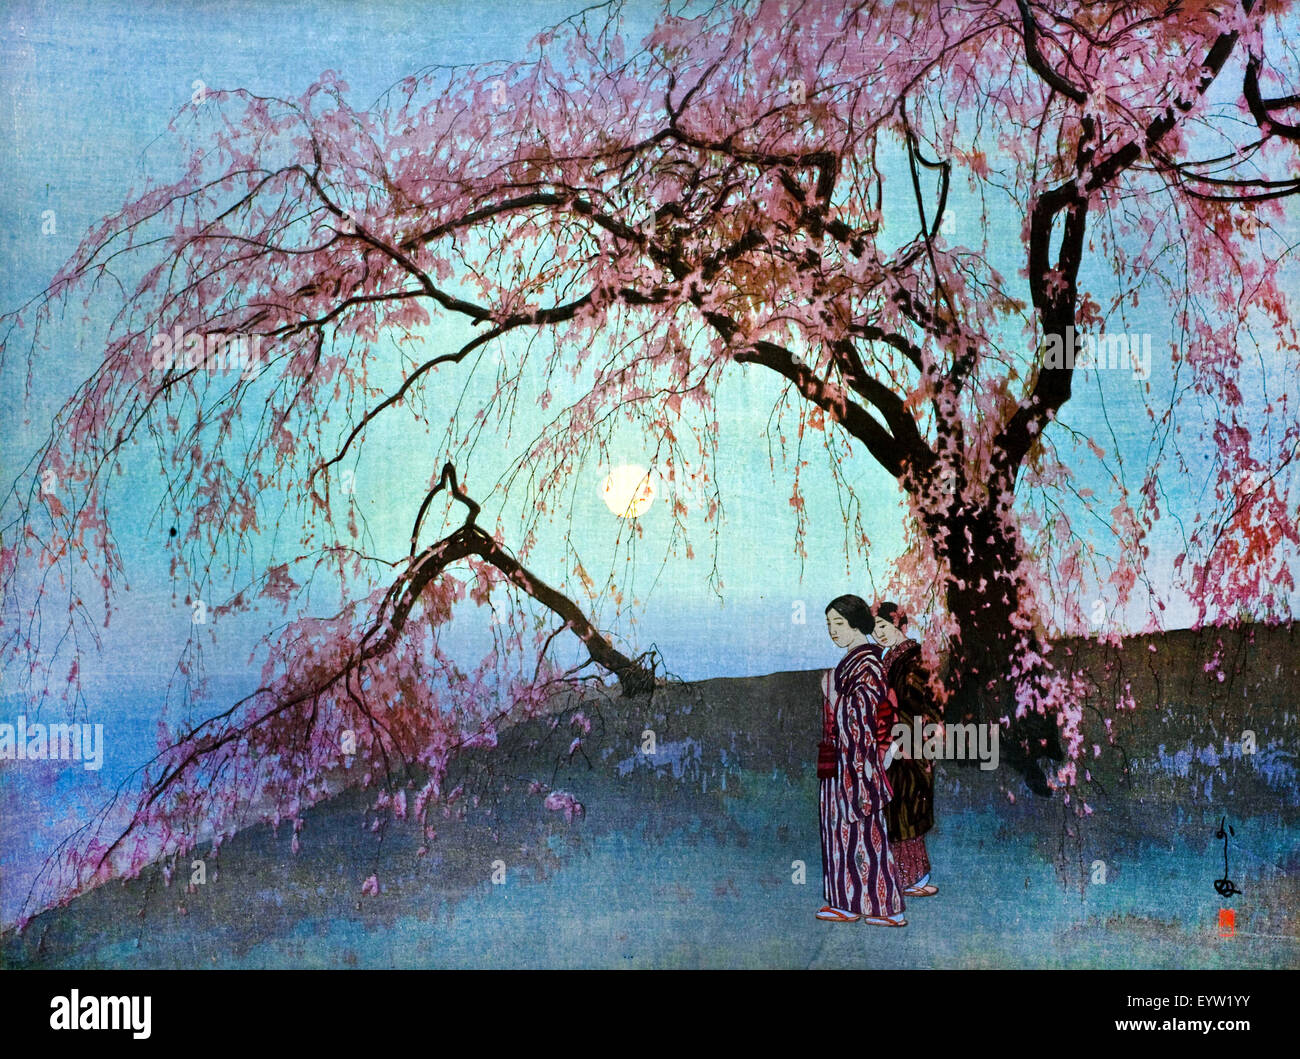 Hiroshi Yoshida, Kumoi-Zakura (Kumoi Cherry Trees) 1920 Color woodblock print. Toledo Museum of Art, Ohio, USA. - Stock Image